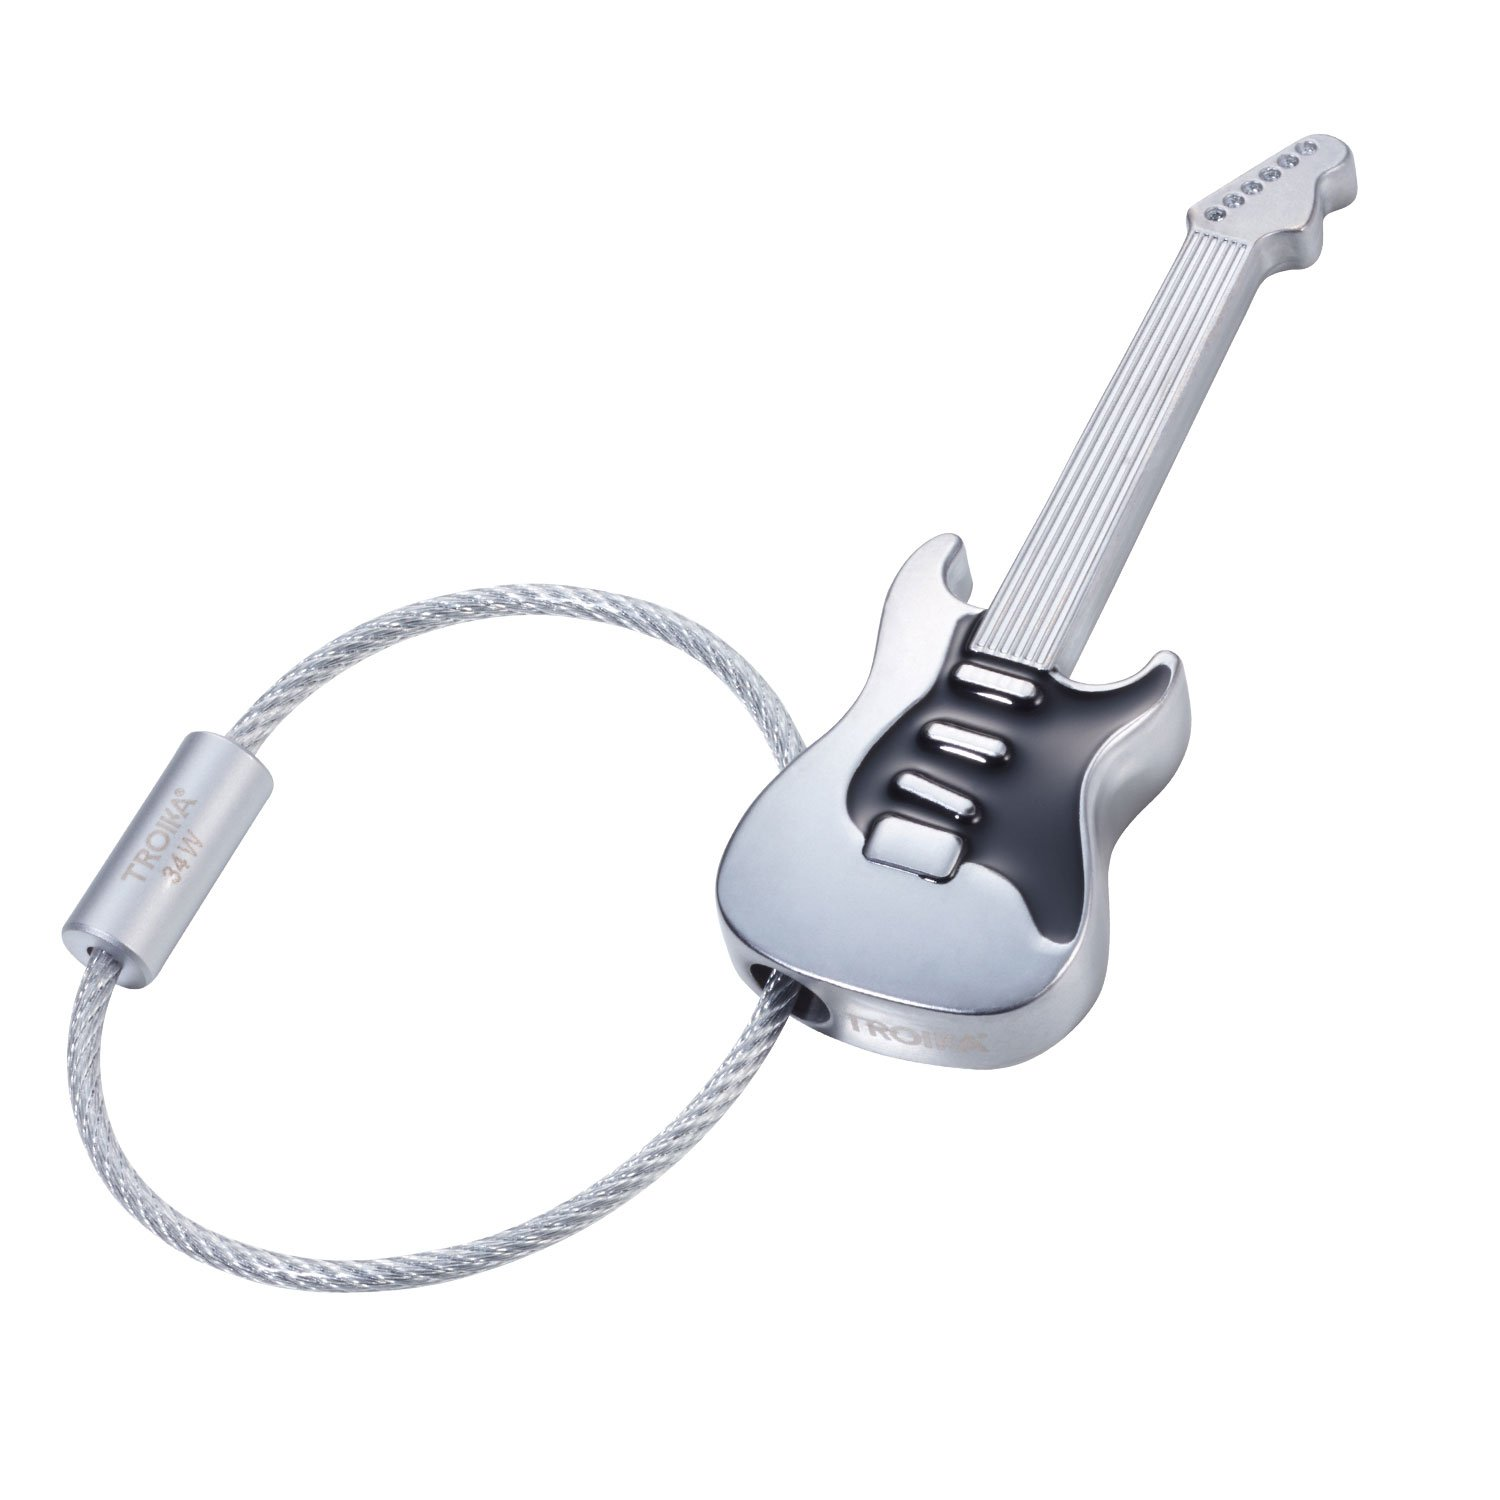 Amazon.com: TROIKA STRAT AM RING – KR17-38/MA – Keyring ...